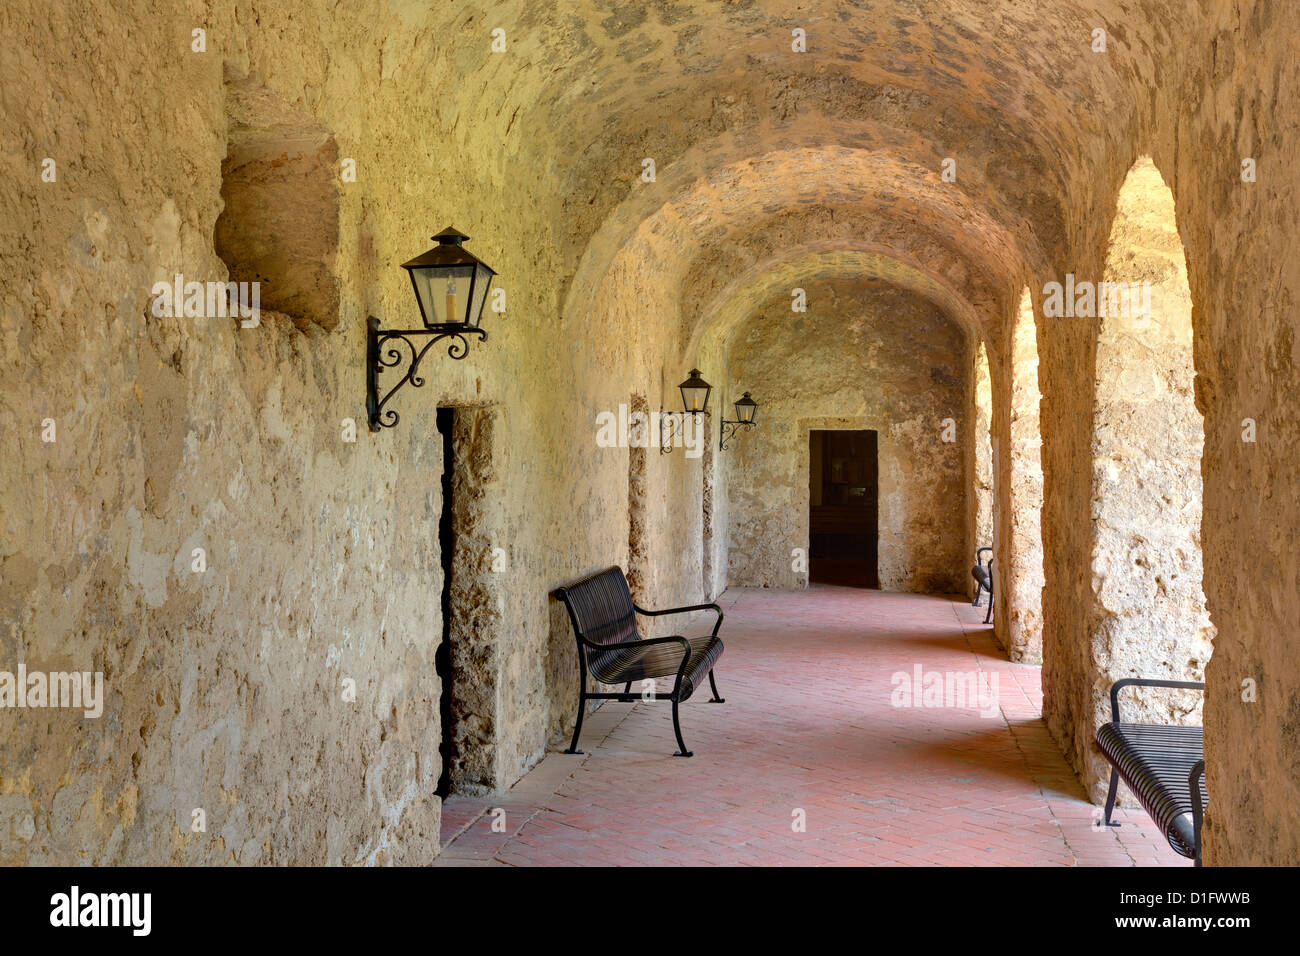 Mission Concepcion, San Antonio, Texas, United States of America, North America - Stock Image